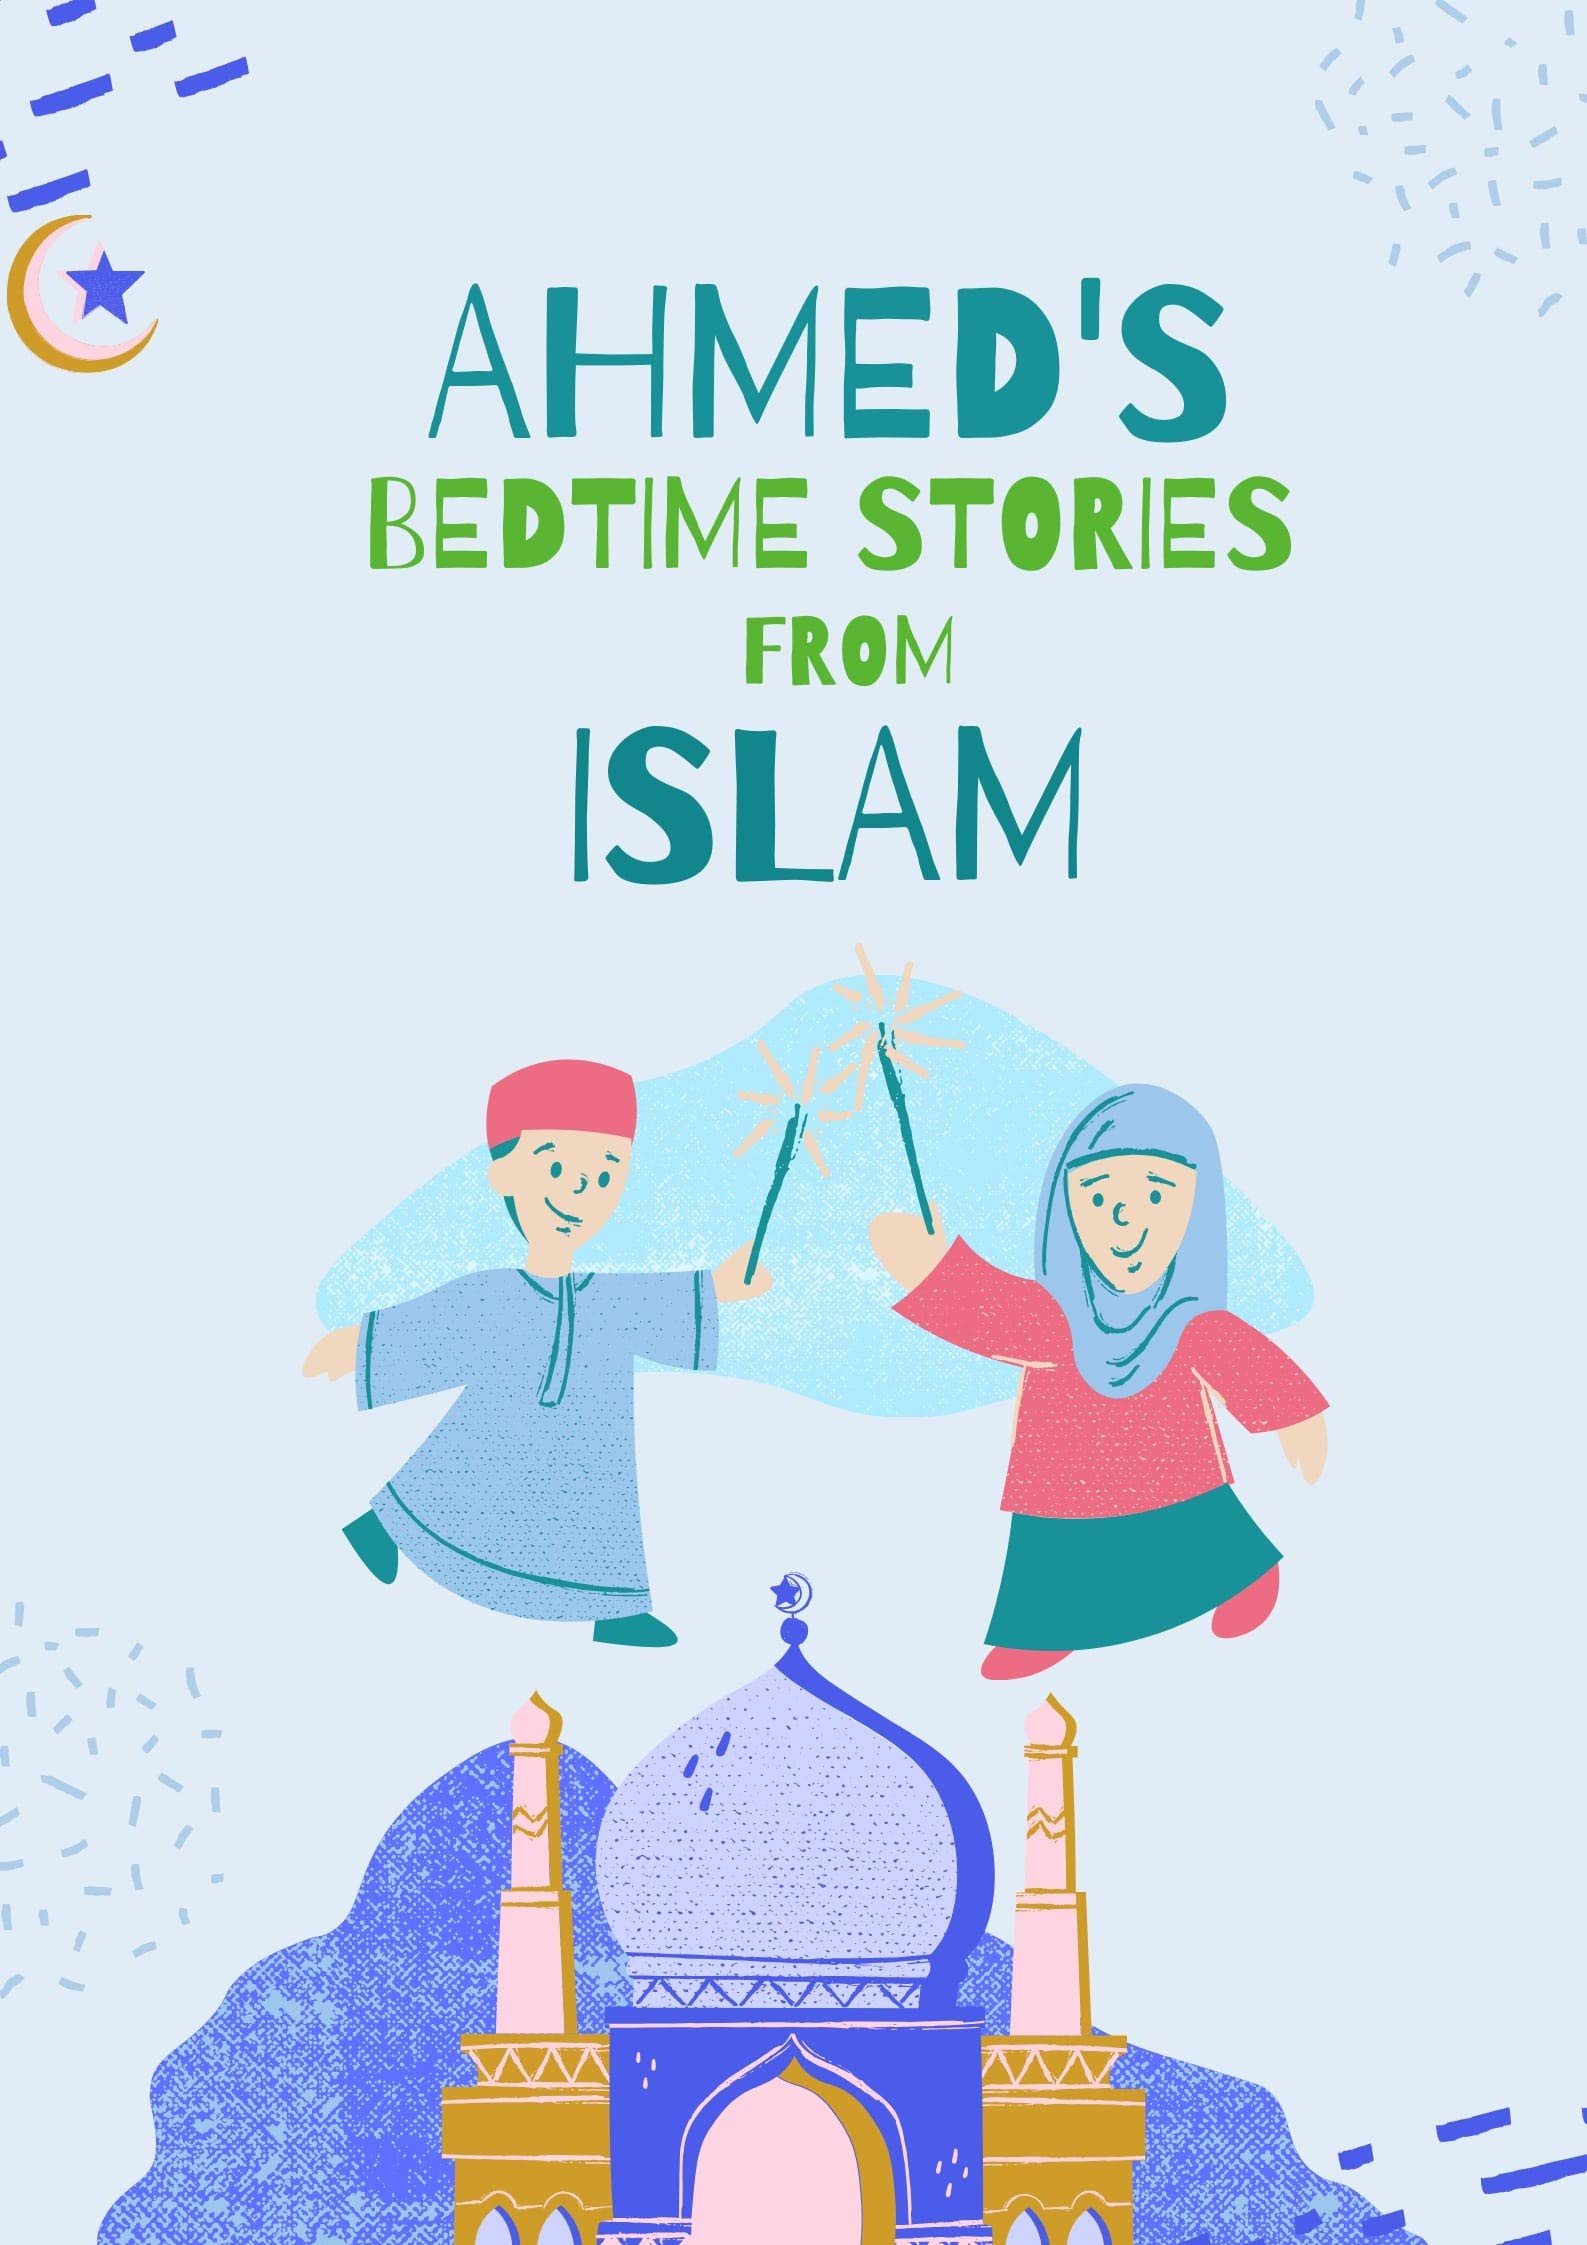 AHMED BEDTIME STORIES FROM ISLAM: FOR YOUNG MUSLIM: Islamic Children's Books on the Quran, the Hadith and the Prophet Muhammad